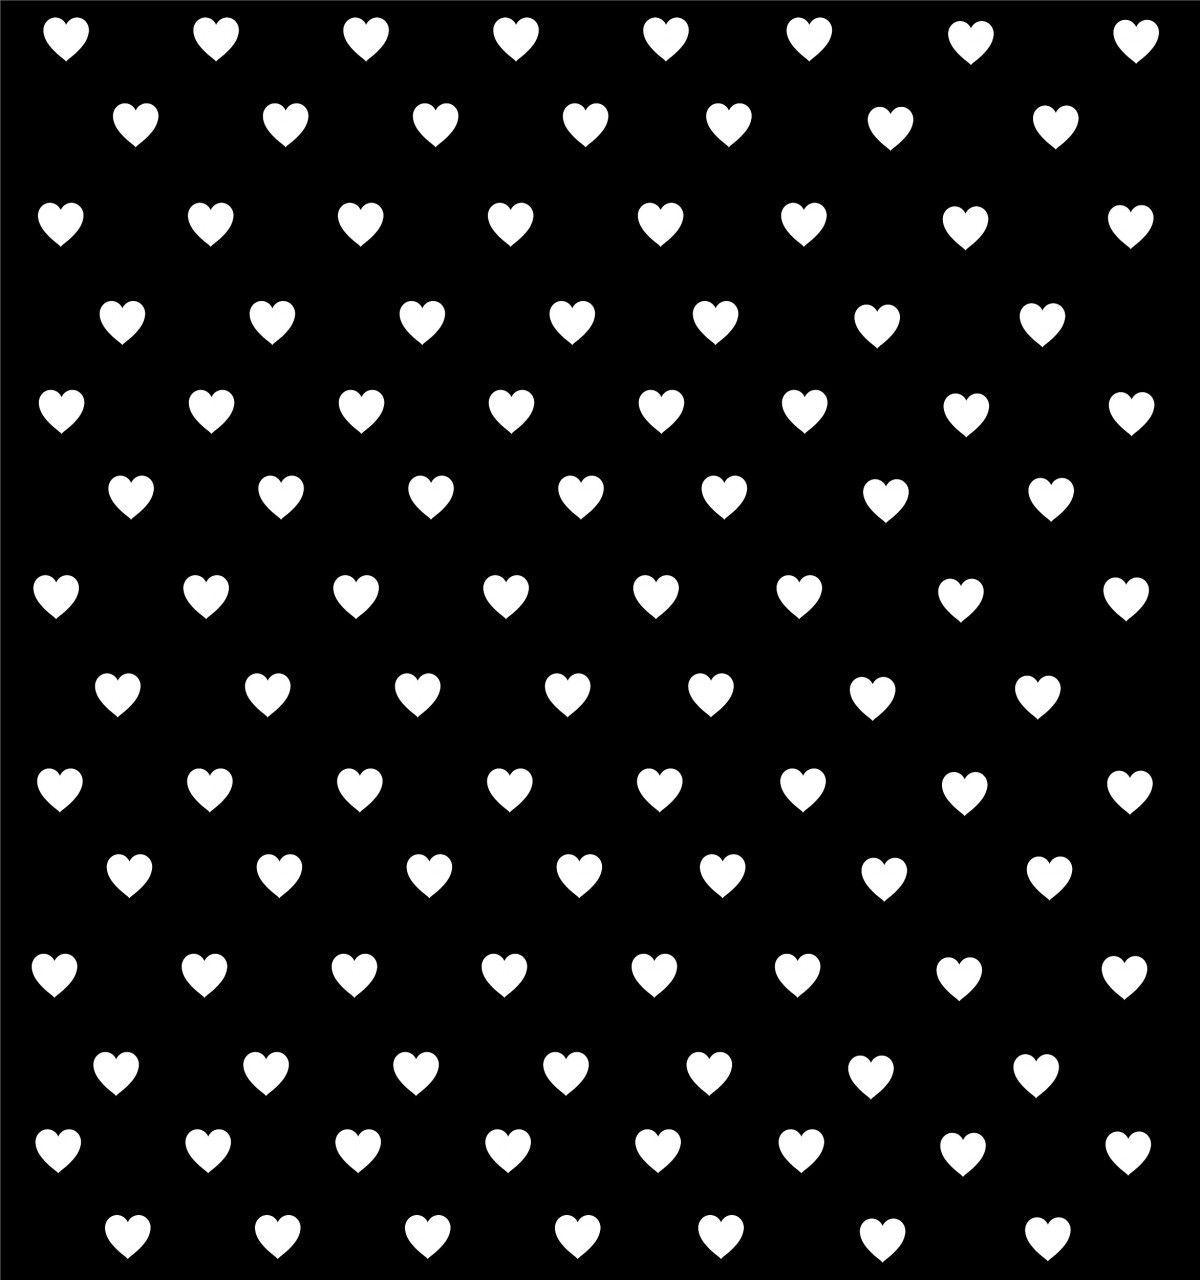 Wallpapers For > Black And White Hearts Backgrounds